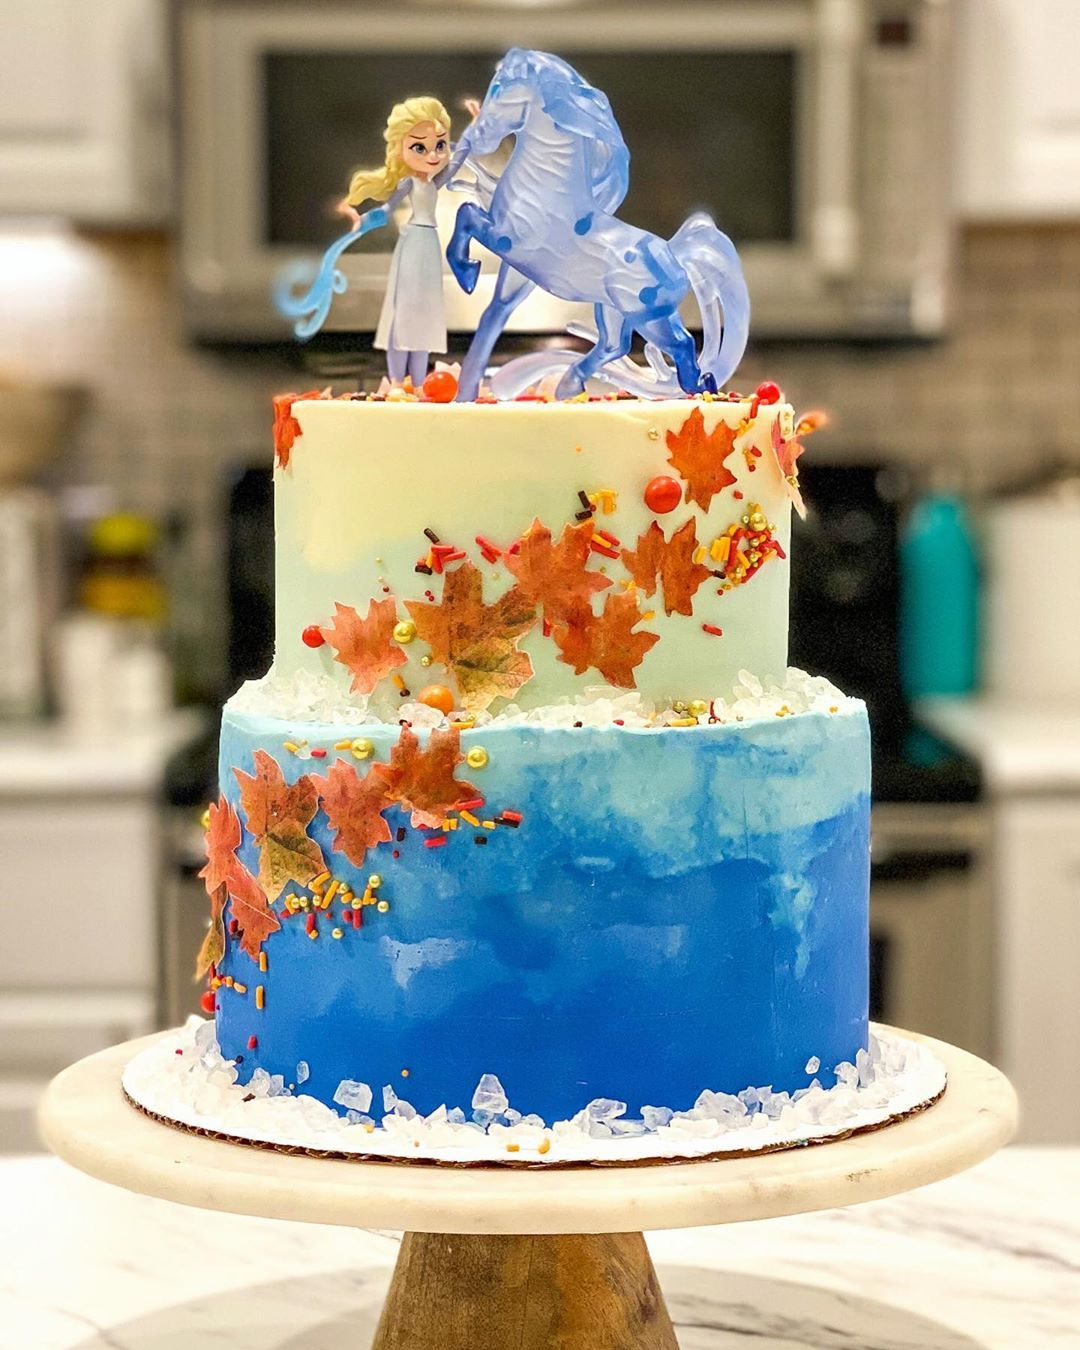 50 Drool Worthy Frozen Inspired Cakes That Look Too Good To Eat In